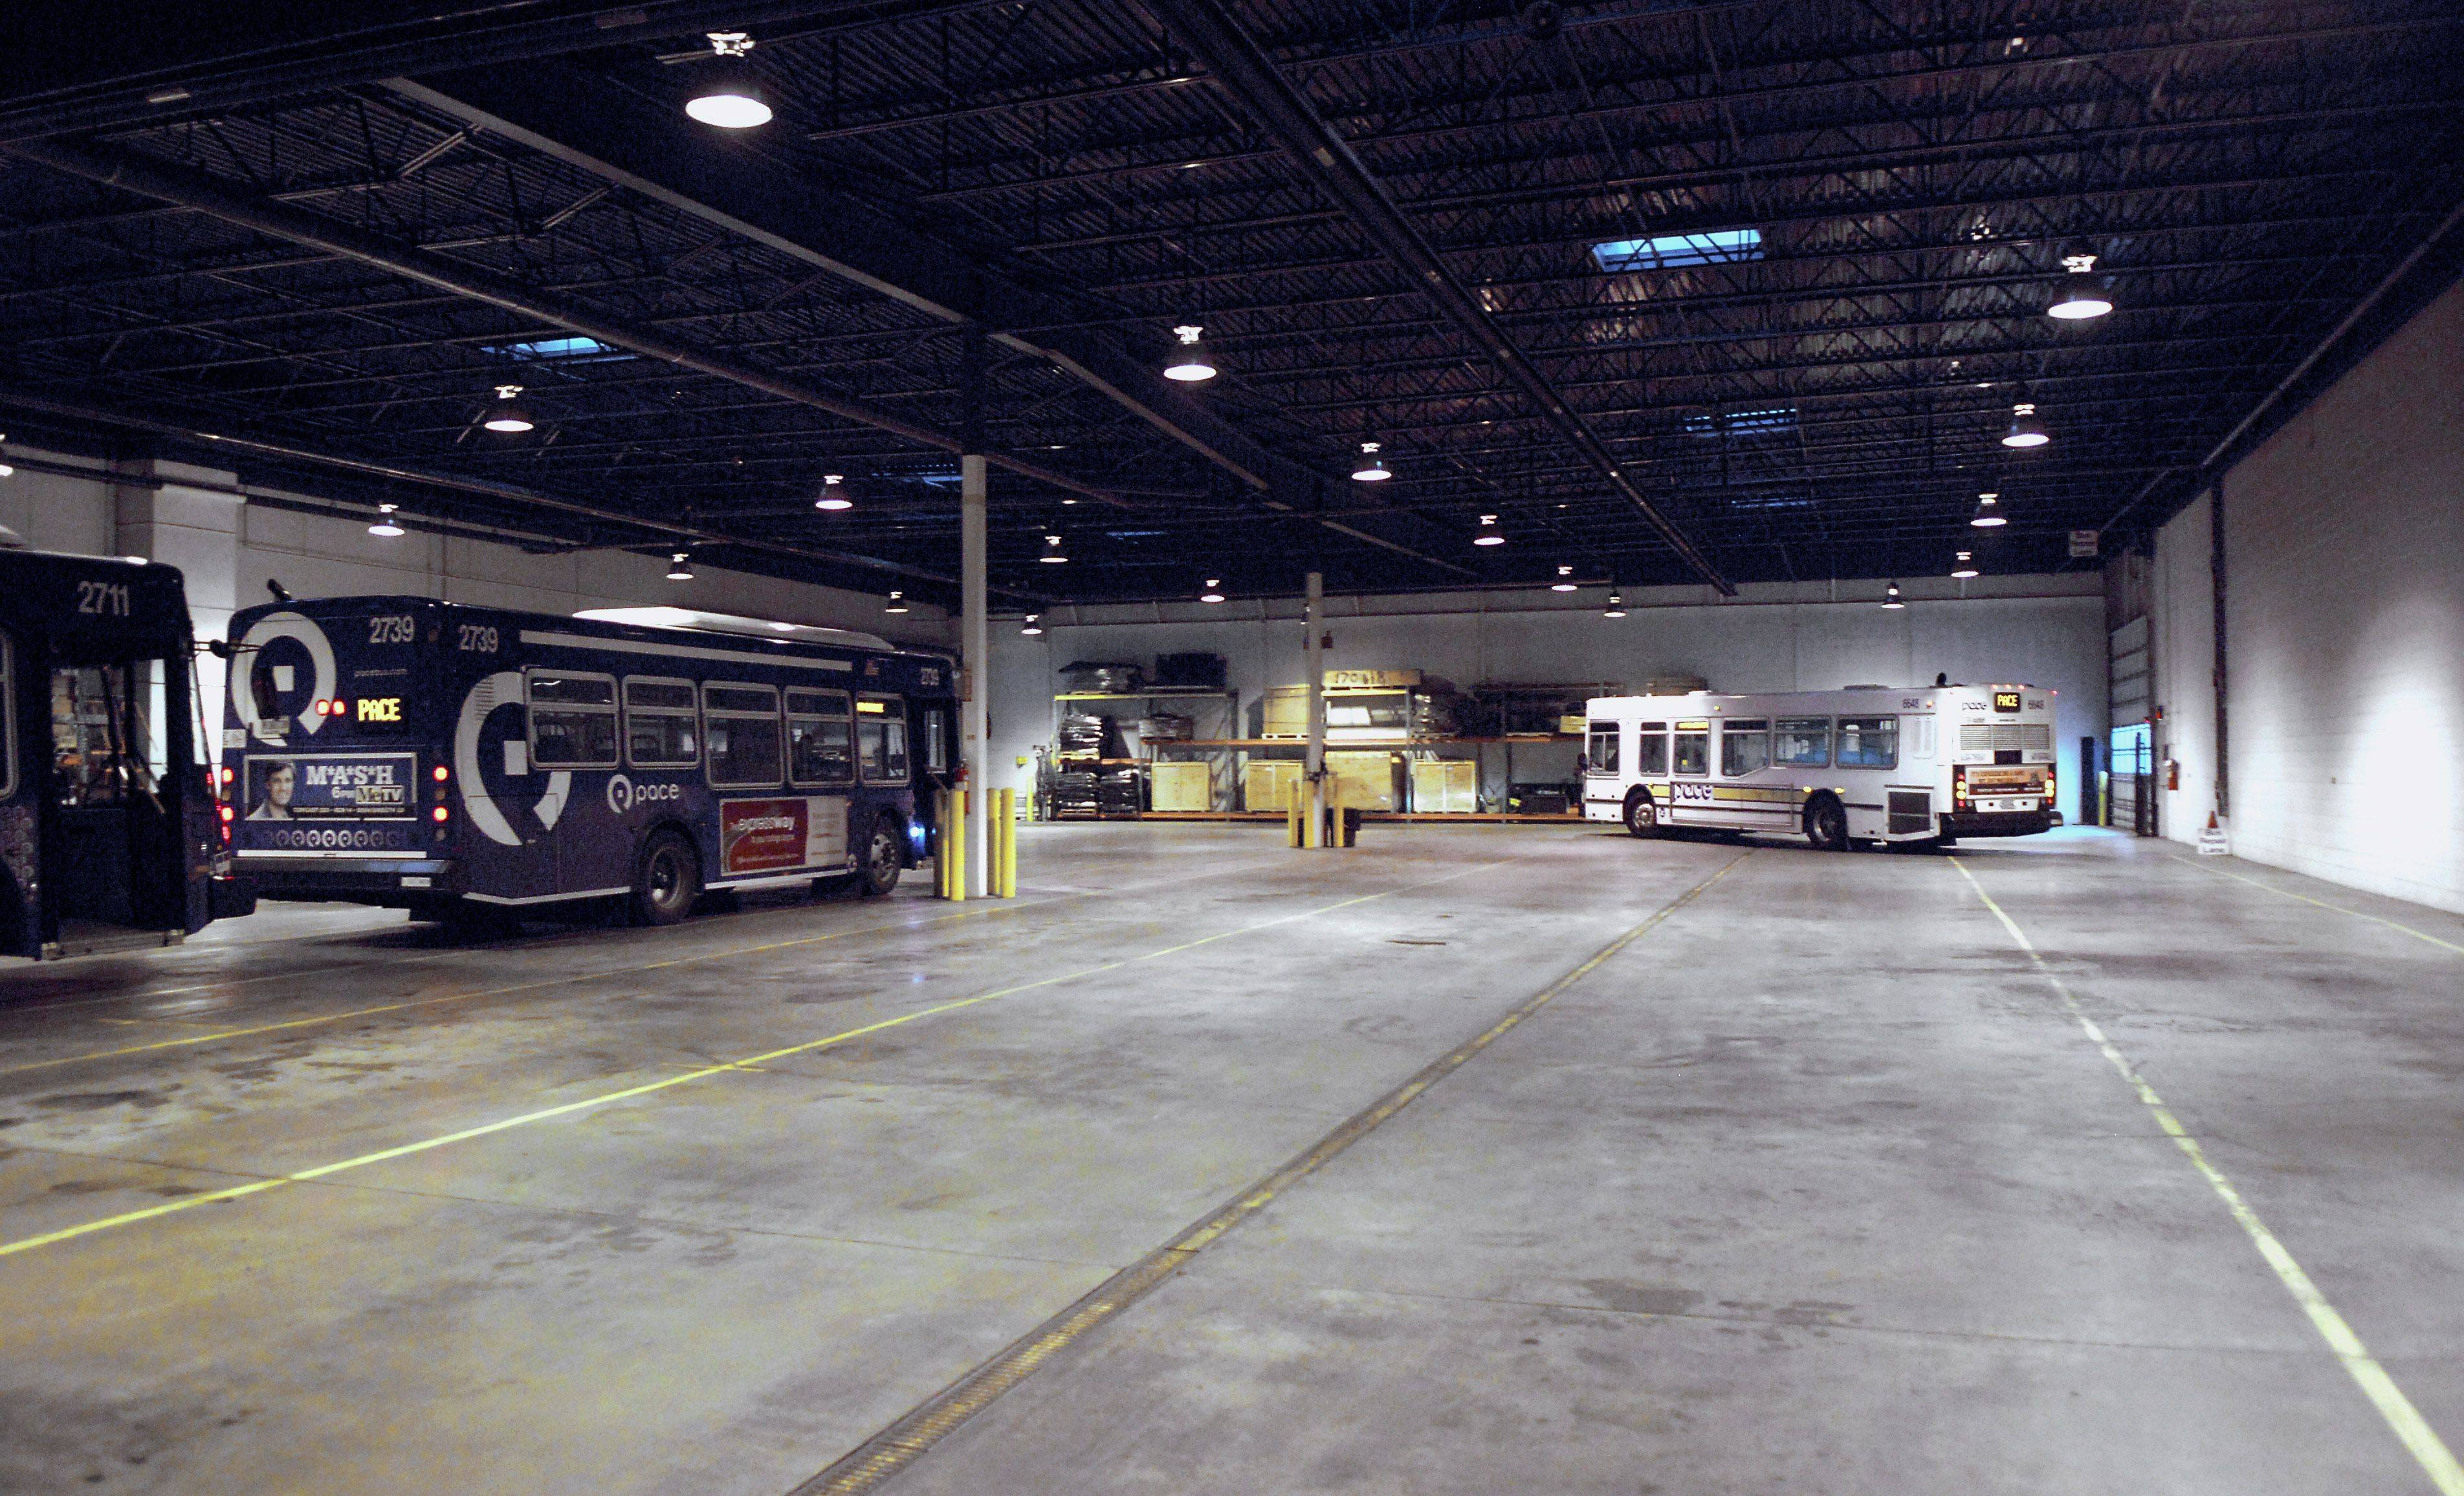 A 35 foot white Pace bus leaves the Elgin garage for the start of its afternoon shift. The blue buses are 30 feet long. At the end of the night, 48 buses will fit inside the garage, which is longer than shown in this photo.